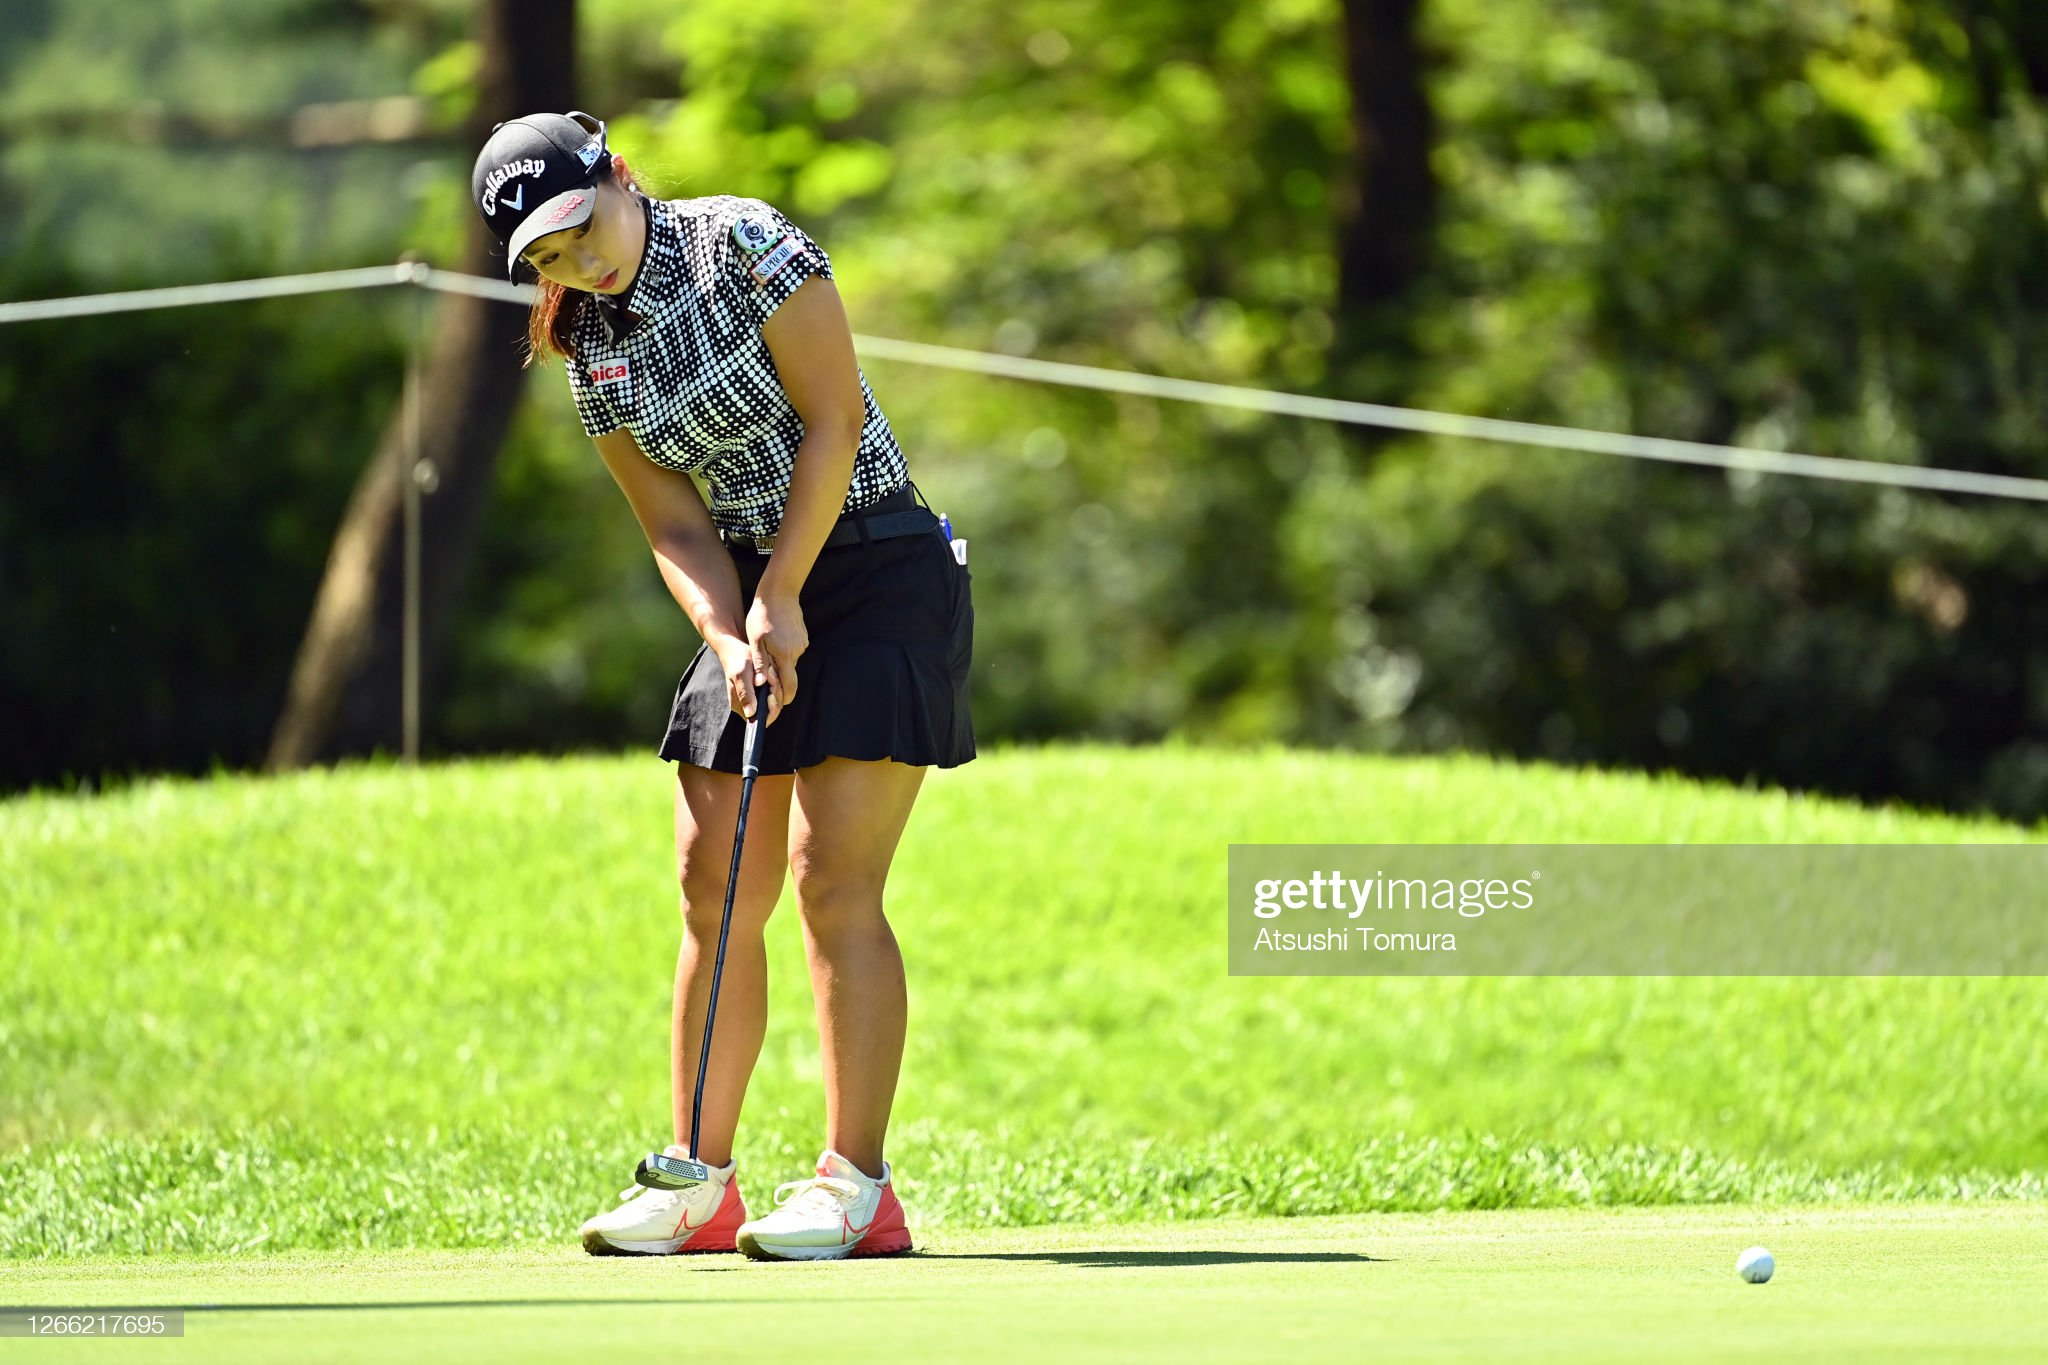 https://media.gettyimages.com/photos/miyuki-takeuchi-of-japan-attempts-a-putt-on-the-9th-green-during-the-picture-id1266217695?s=2048x2048